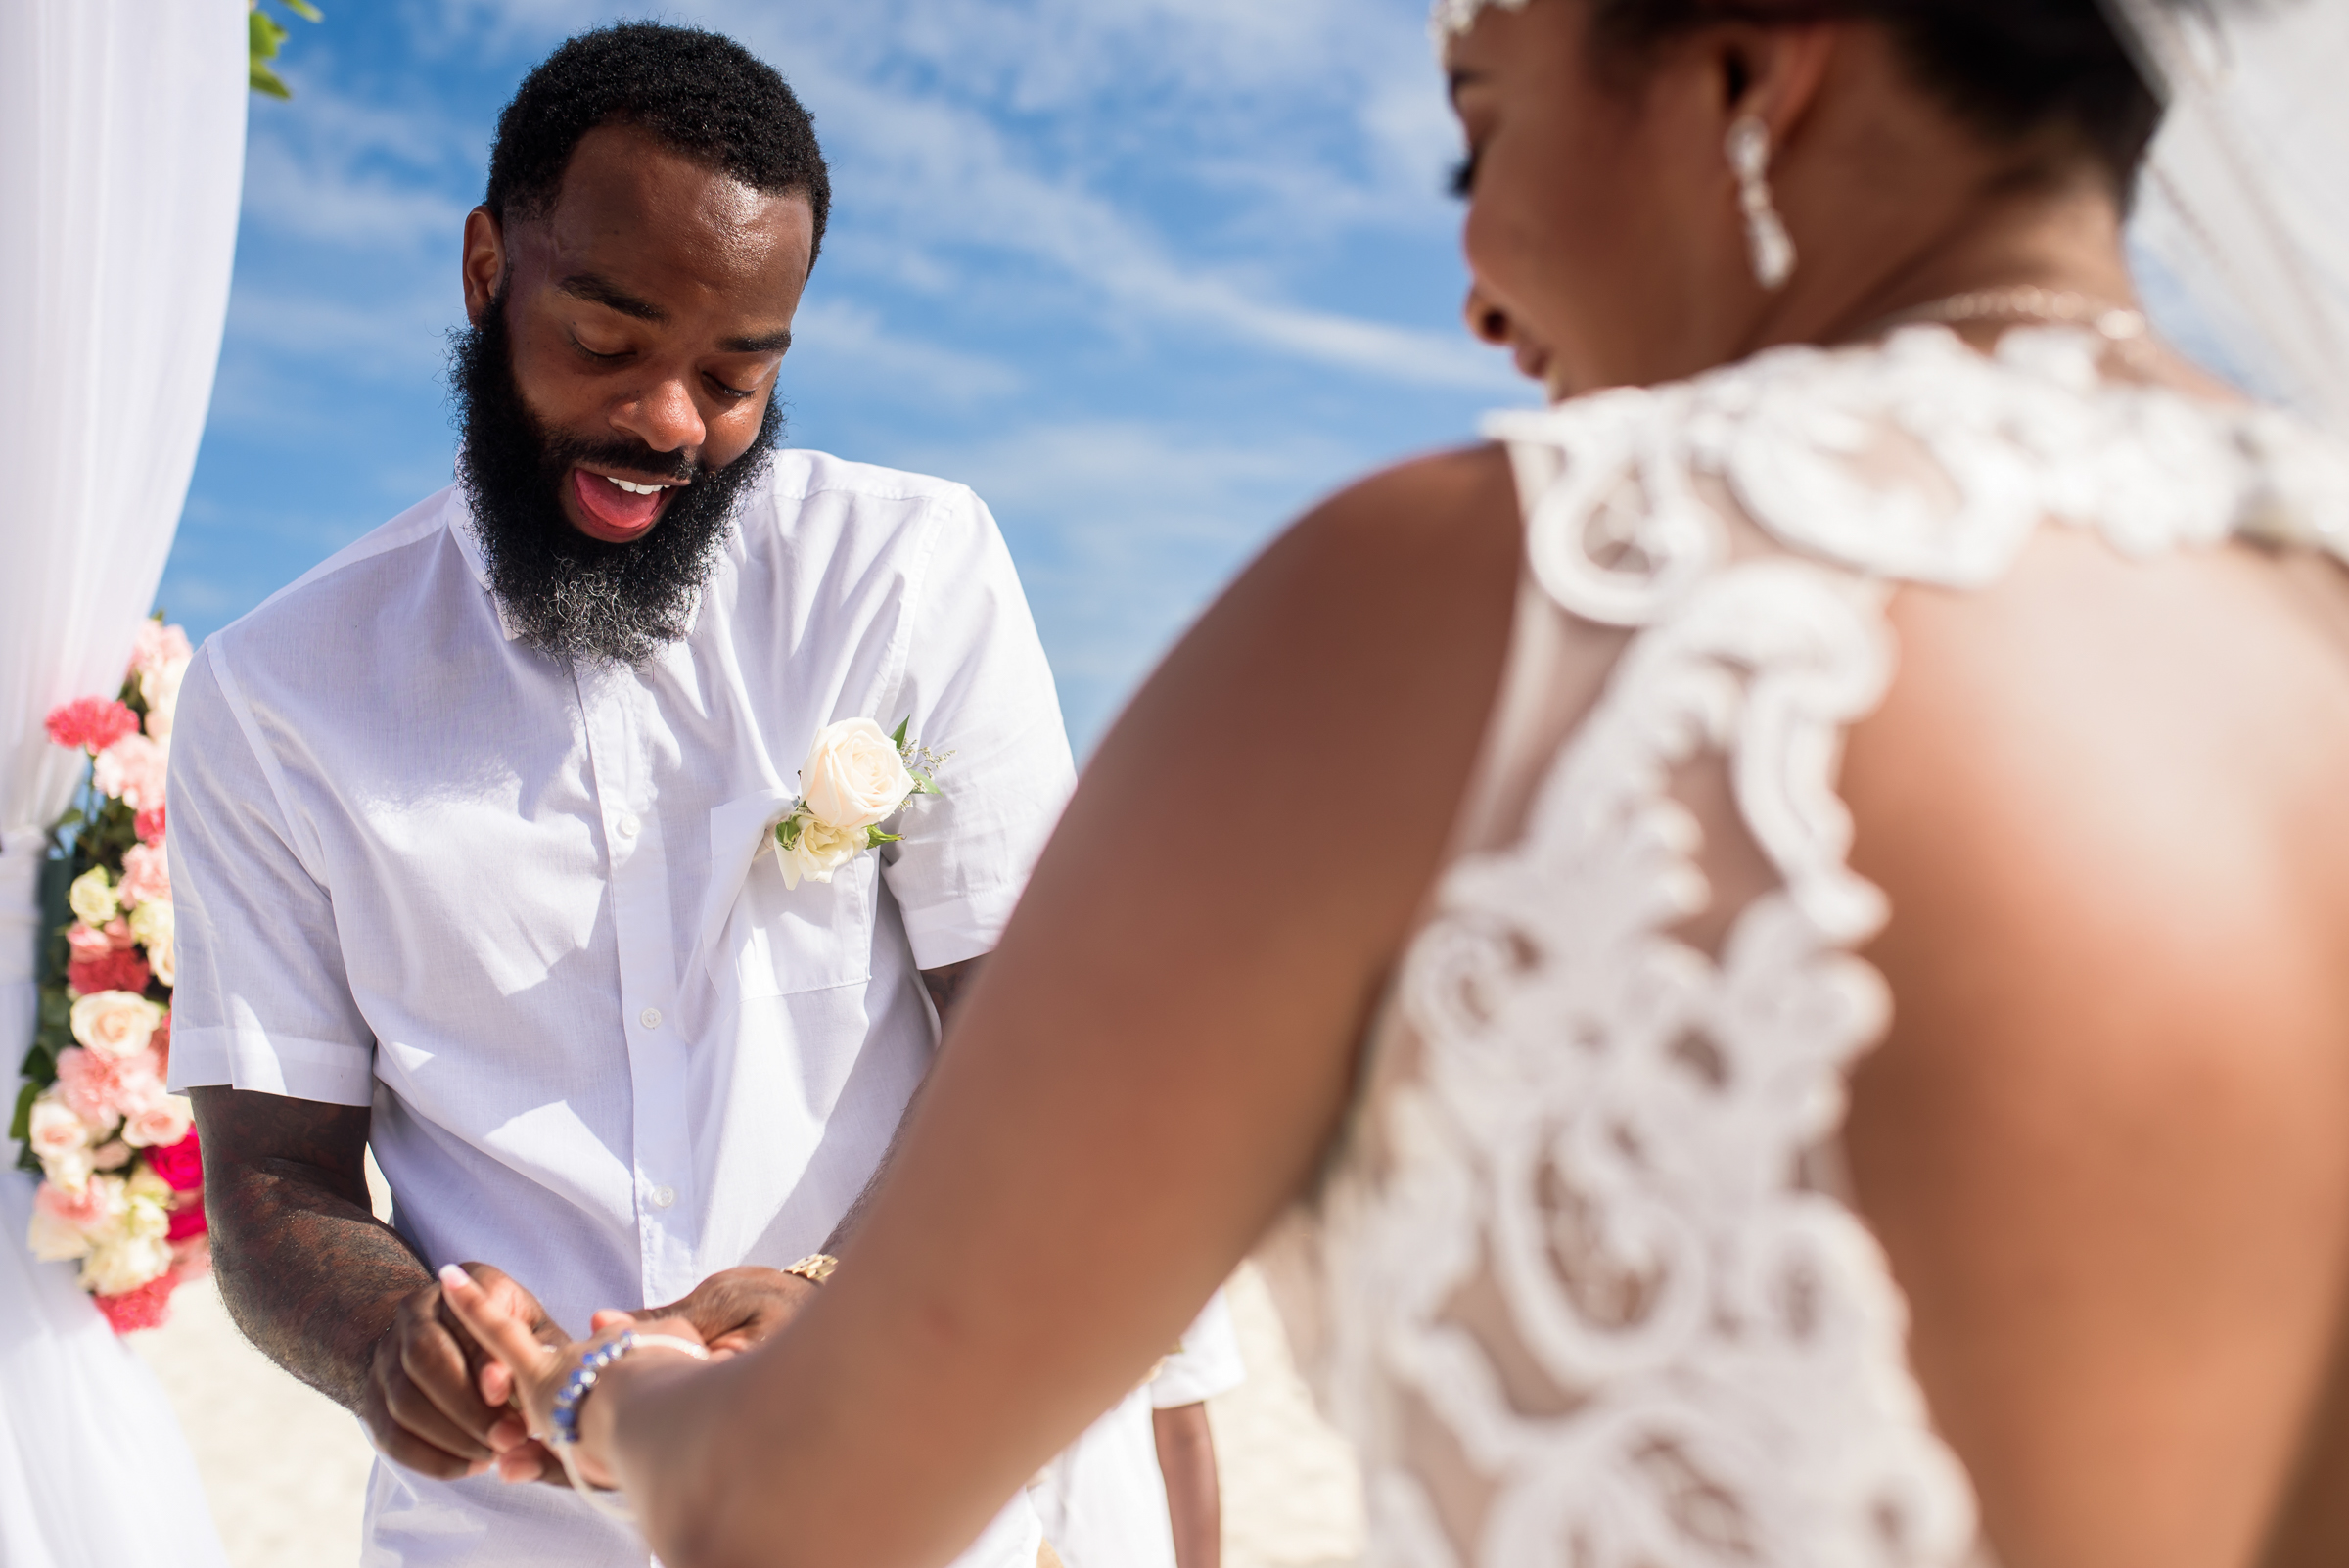 Groom puts ring on bride in outdoor ceremony - photo by Ashleigh Bing Photography